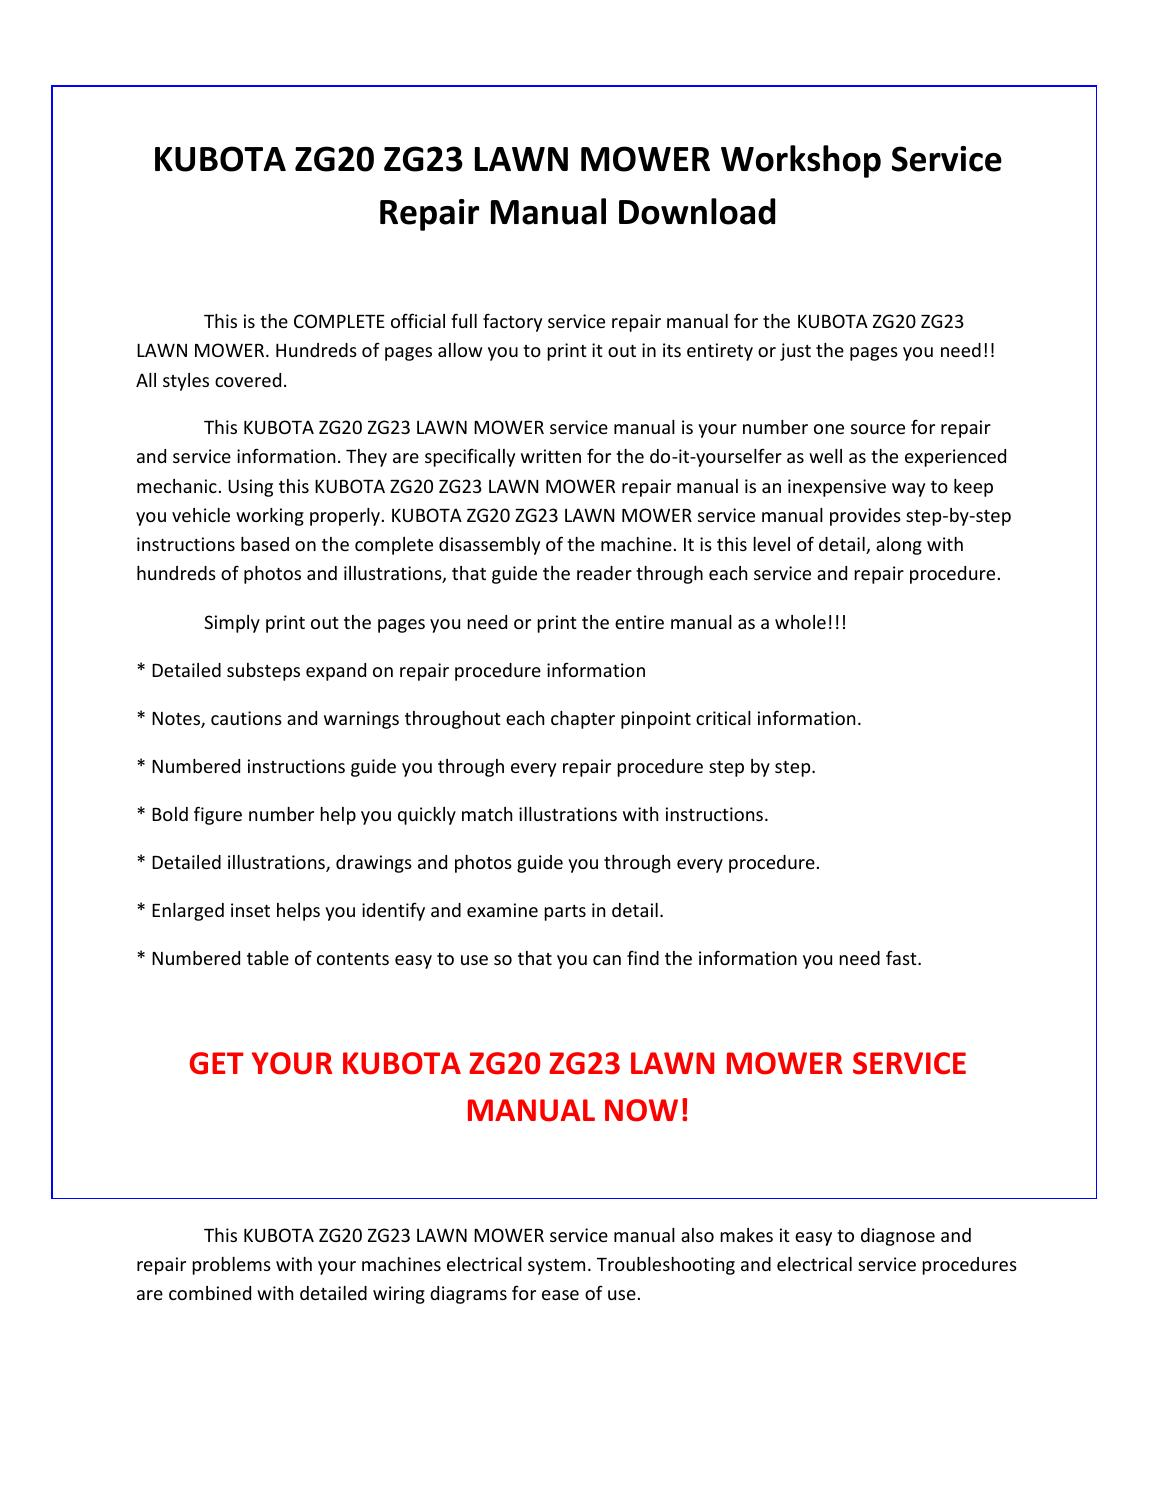 Kubota Zg23 Service Manual Free Main Electrical Fuse Box Ebay Find Great Deals On Zd21 Zd25 Zd28 Zg20 Sea T Also Images Like Wiring Diagram Replacement Scheme Harness